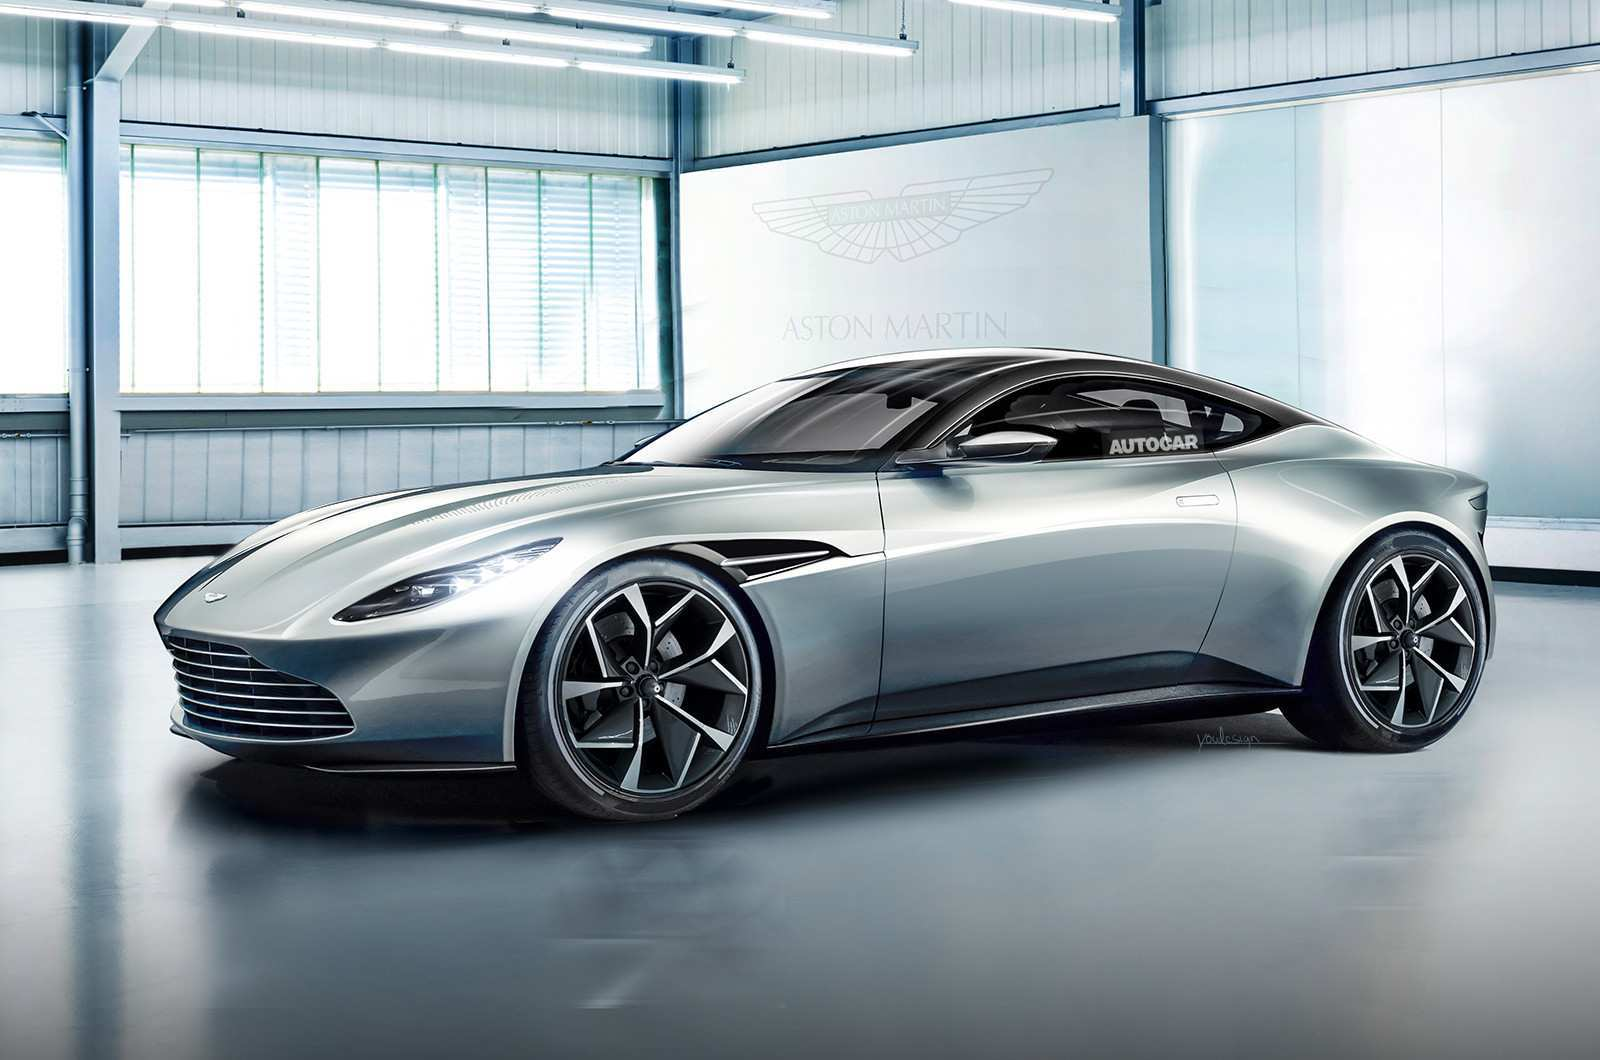 67 New 2020 Aston Martin DB9 Spesification with 2020 Aston Martin DB9